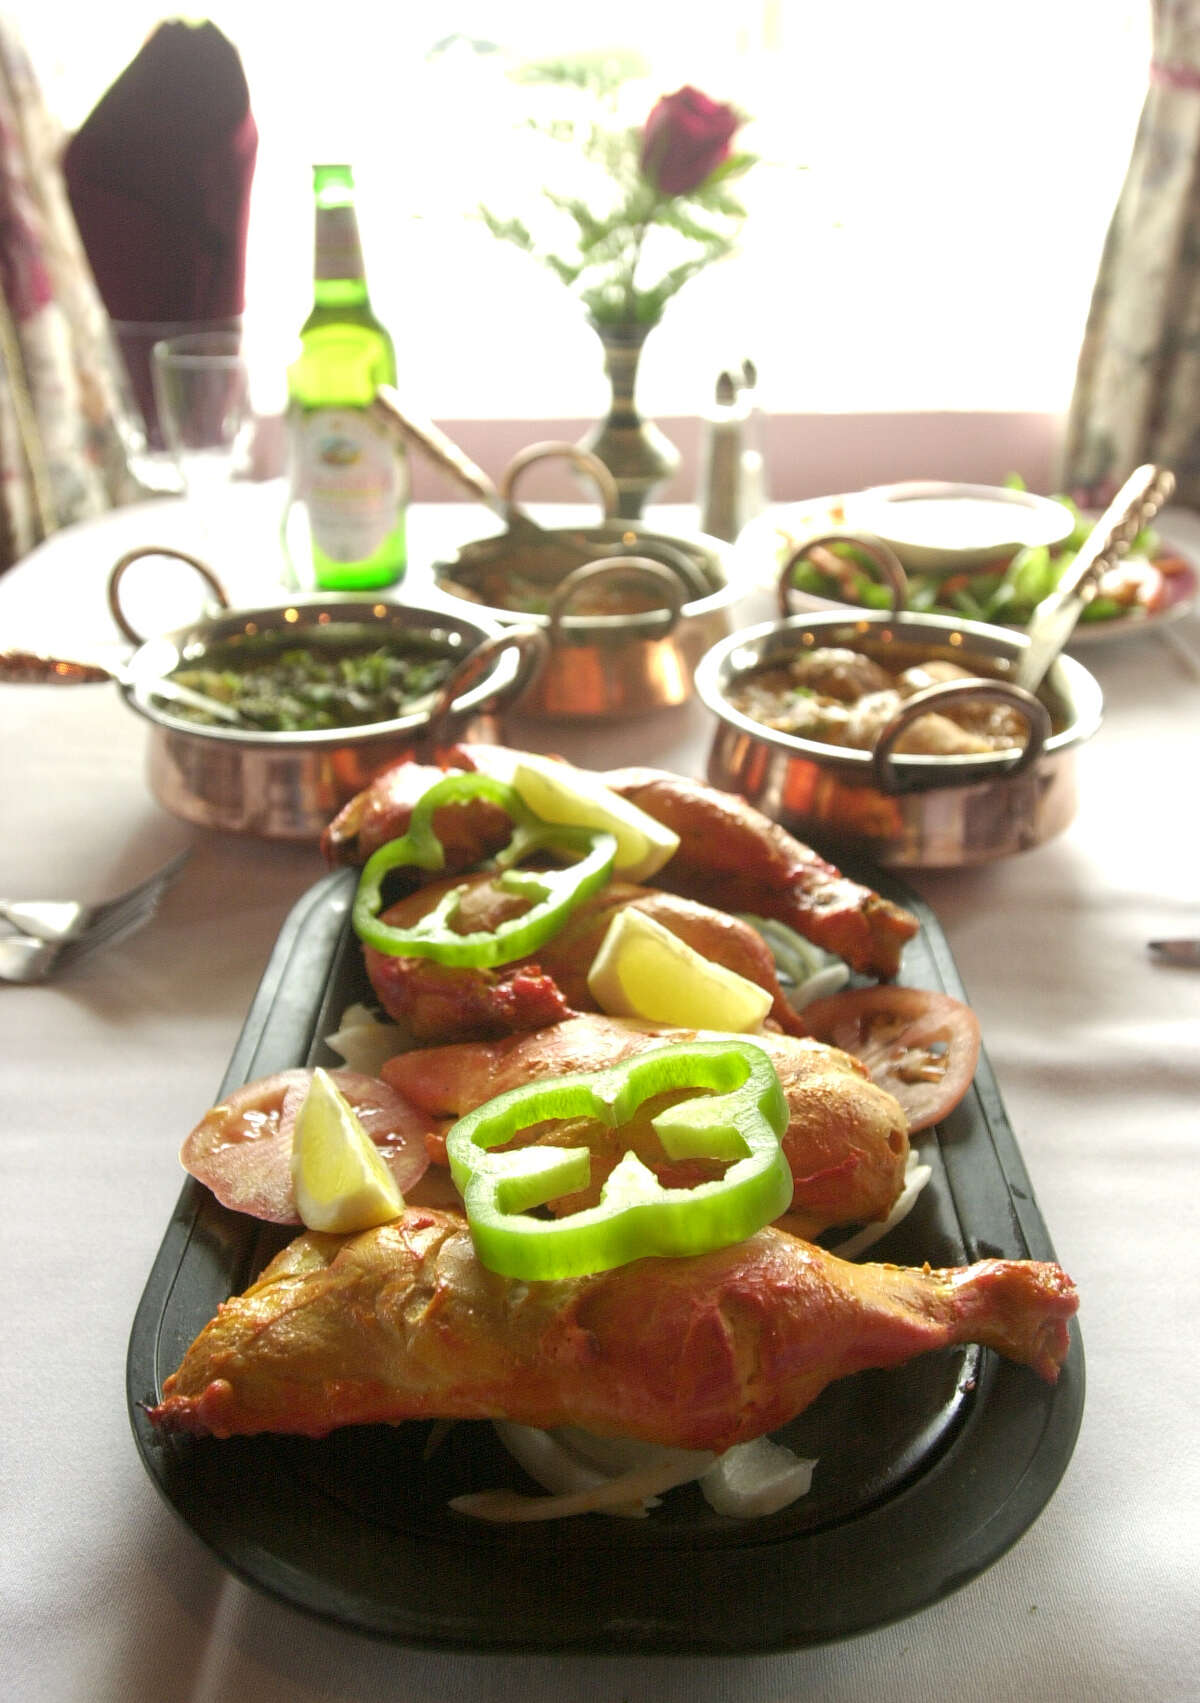 India Oven , 1031 Patricia, 210-366-1030, indiaoven.biz, will serve a Christmas Day Champagne lunch buffet 11 a.m. until 3 p.m. for $14.95 per person. The restaurant also will serve a candlelight dinner from 5-10:30 p.m.